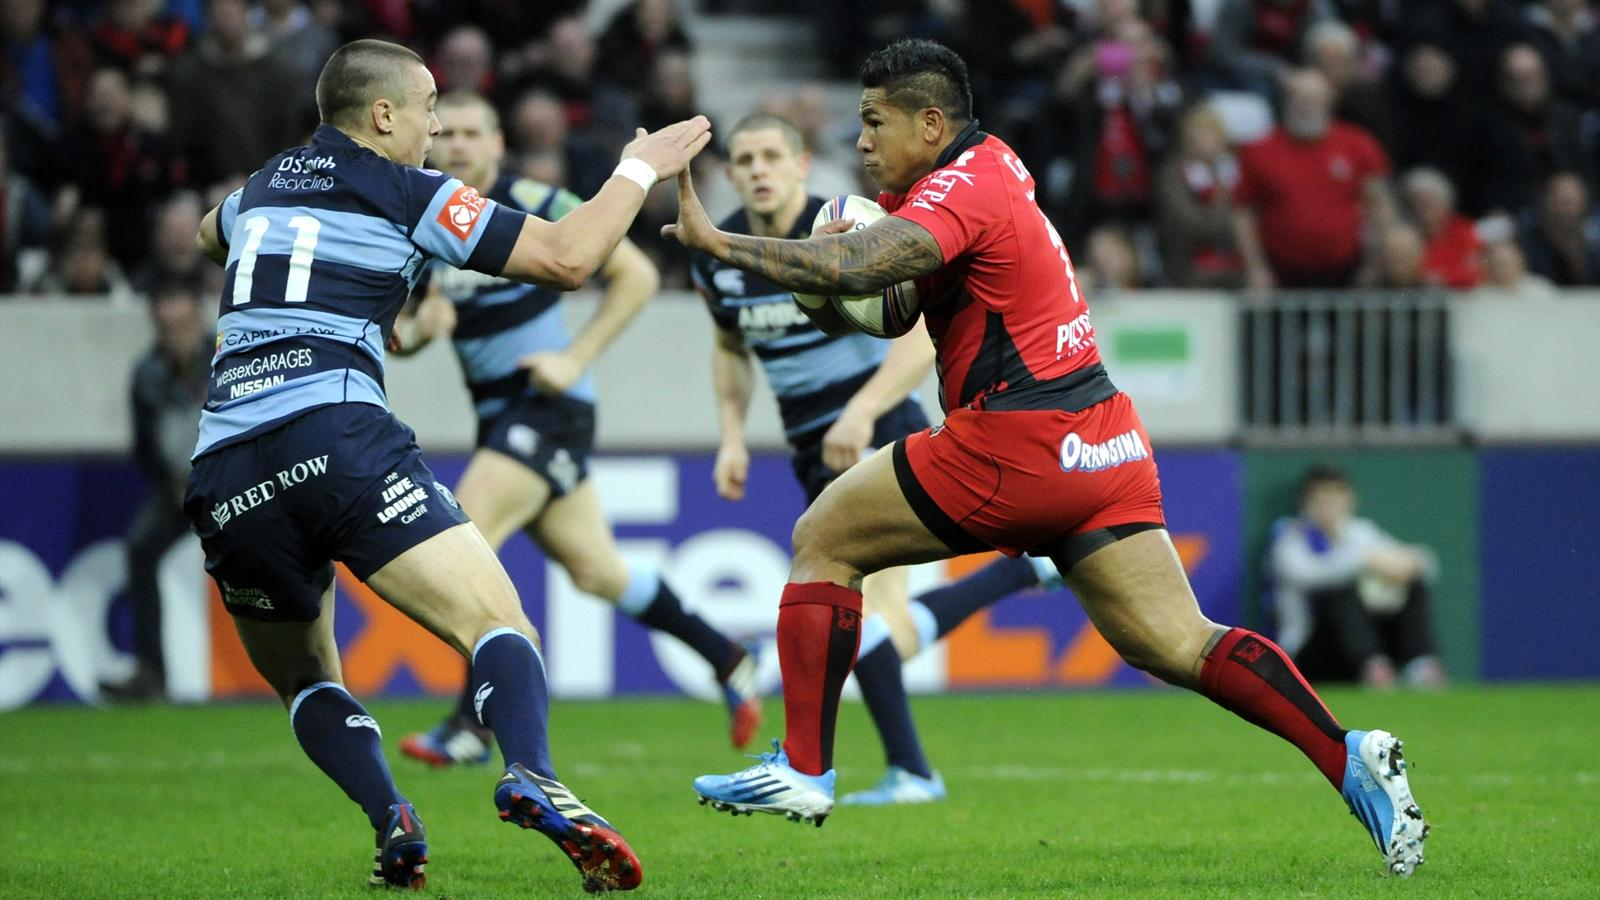 David SMITH  - toulon cardiff - 11 janvier 2014